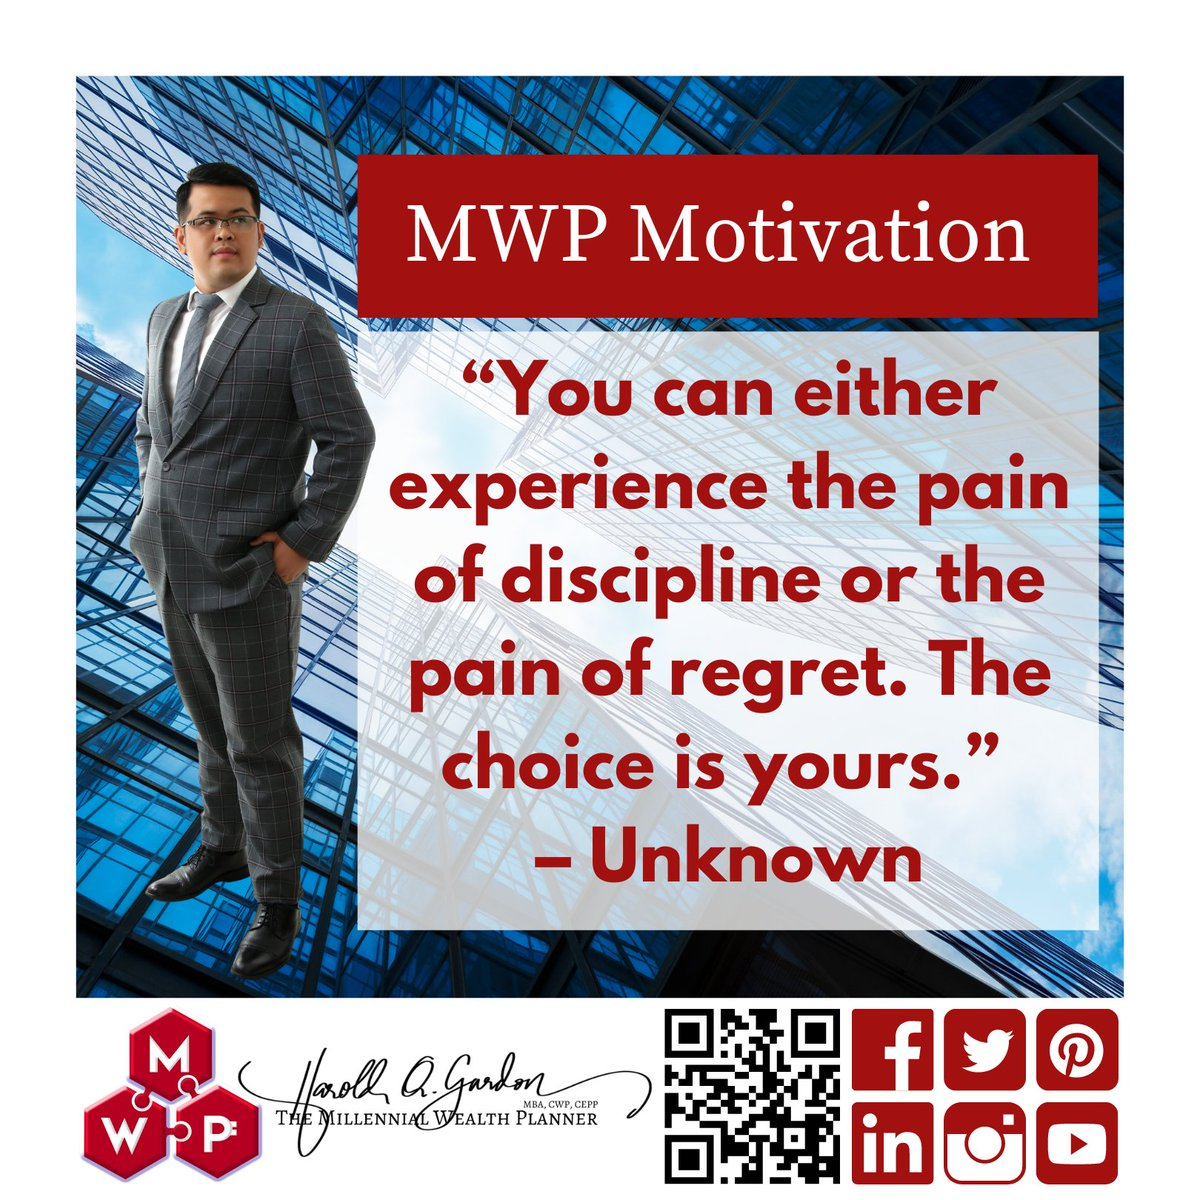 Happy Weekend! . What will you choose? . For me, I will always choose the pain of discipline. . #millennialwealthplanner #mwp #mwpMotivation #motivation #inspiration #workwithpurpose #purpose #passion #dreams #significance #fighting #millennial